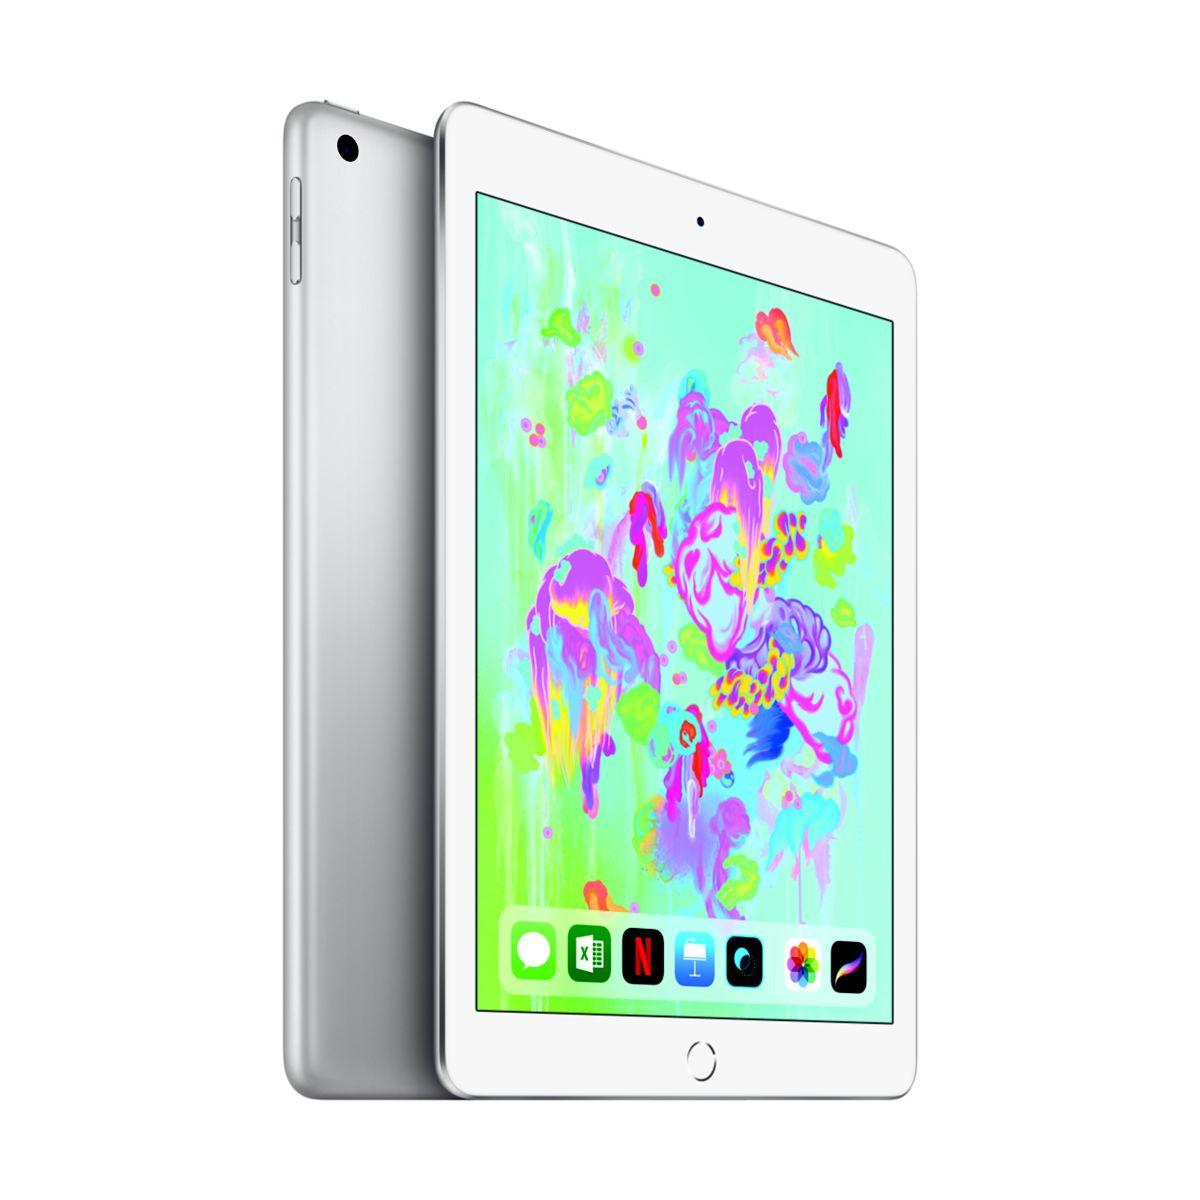 Tablette apple ipad new 128go cell argent (photo)